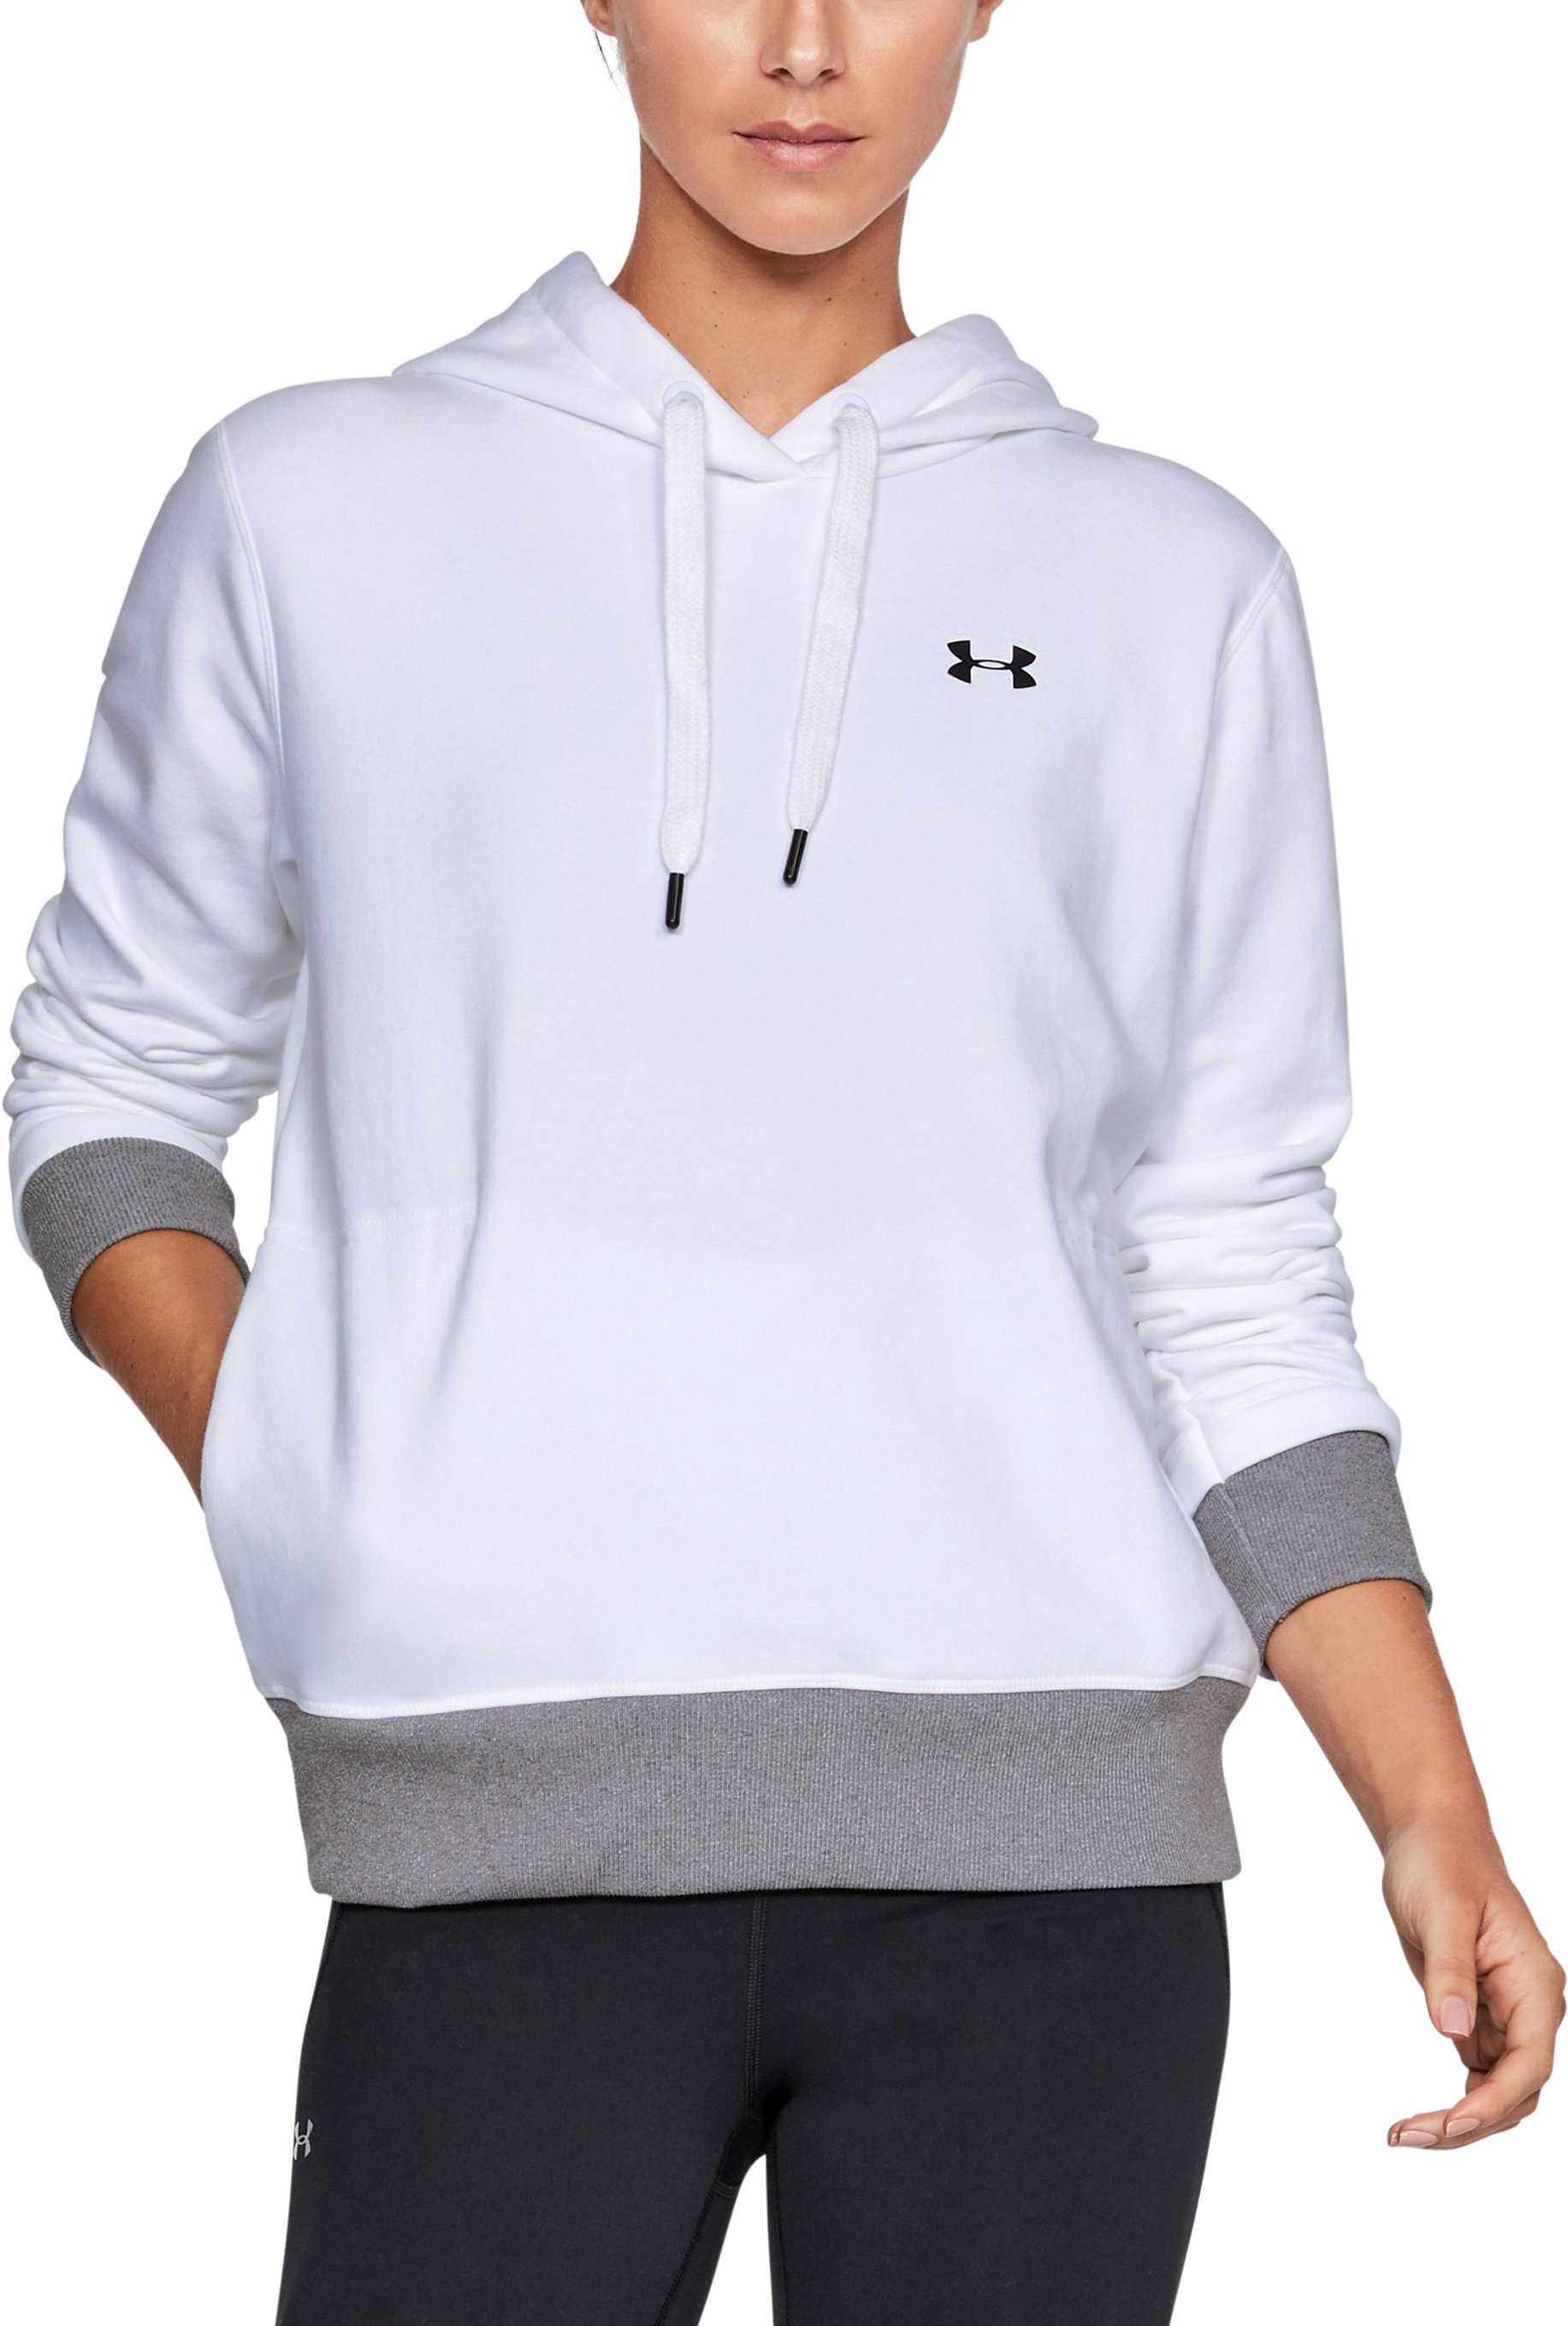 Women's UA x Project Rock Threadborne Fleece Hoodie, White